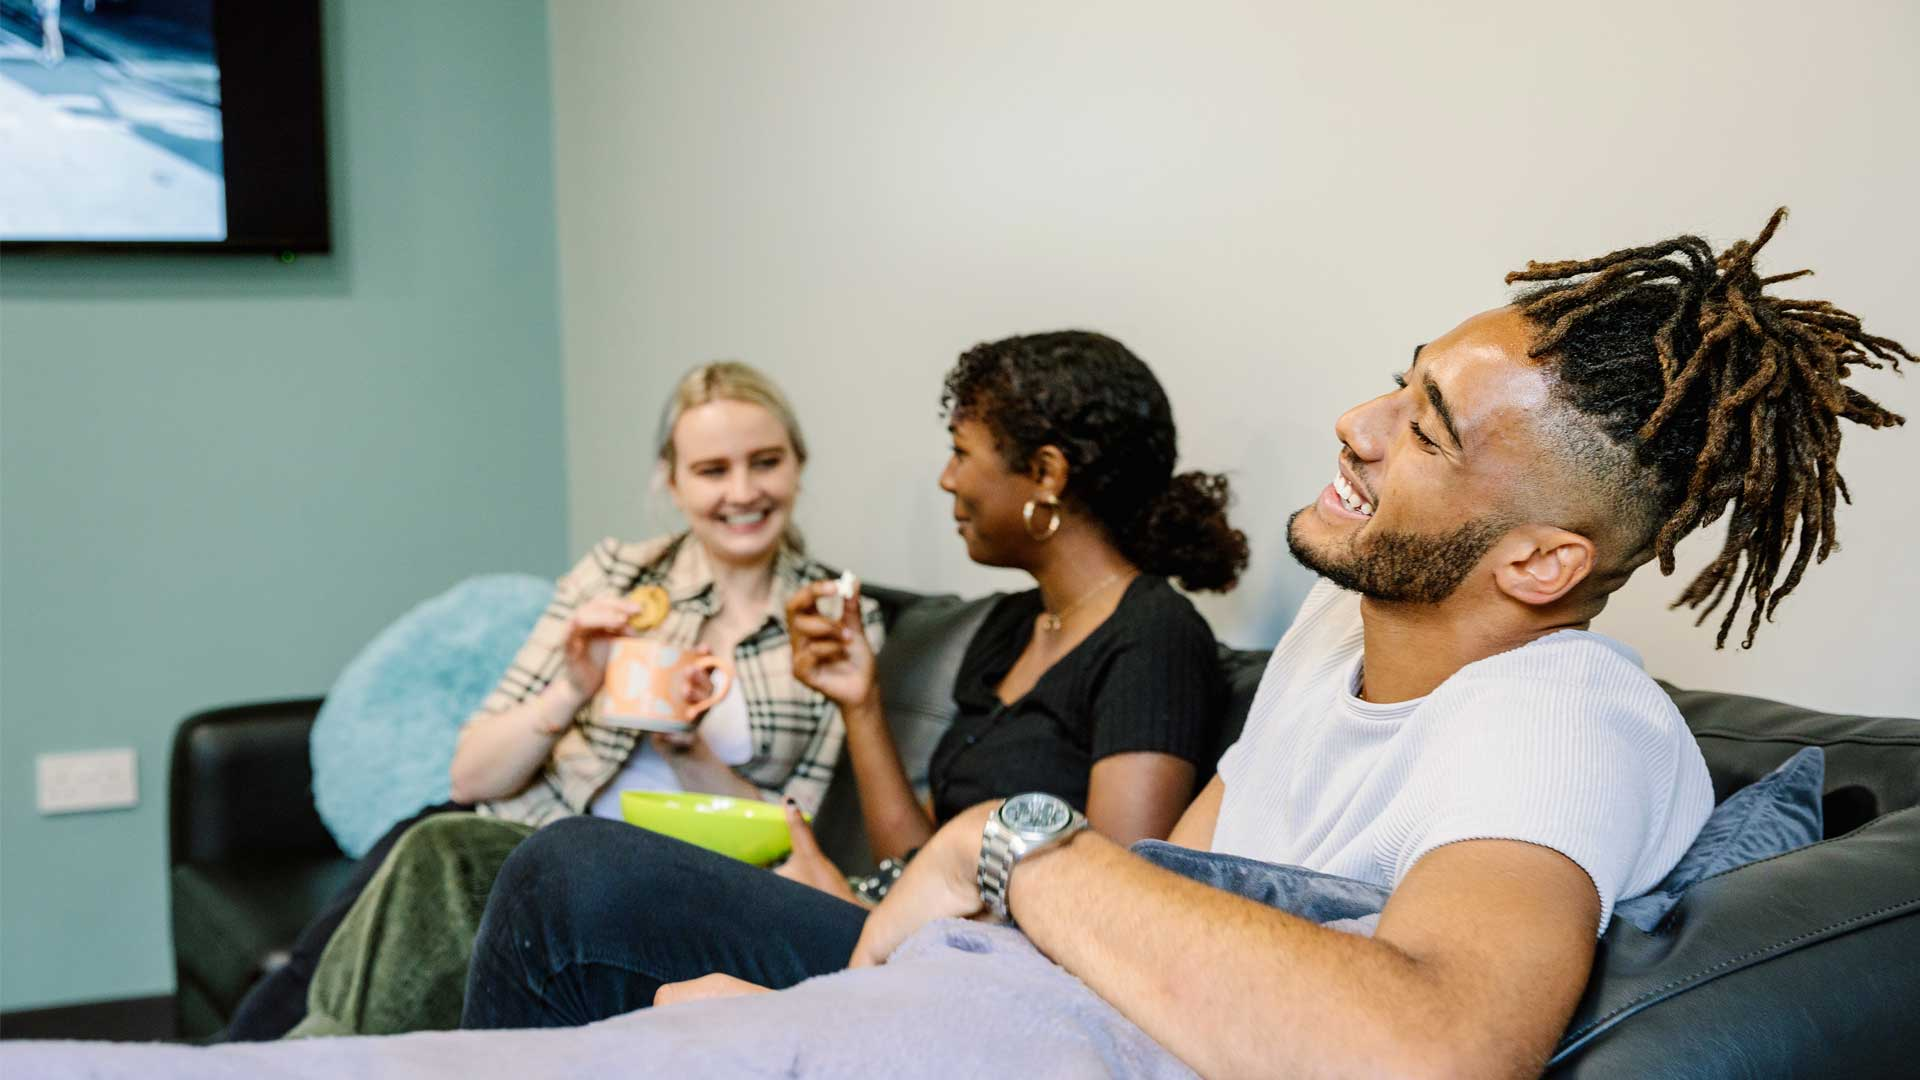 Students relaxing in a lounge at Storthes Hall